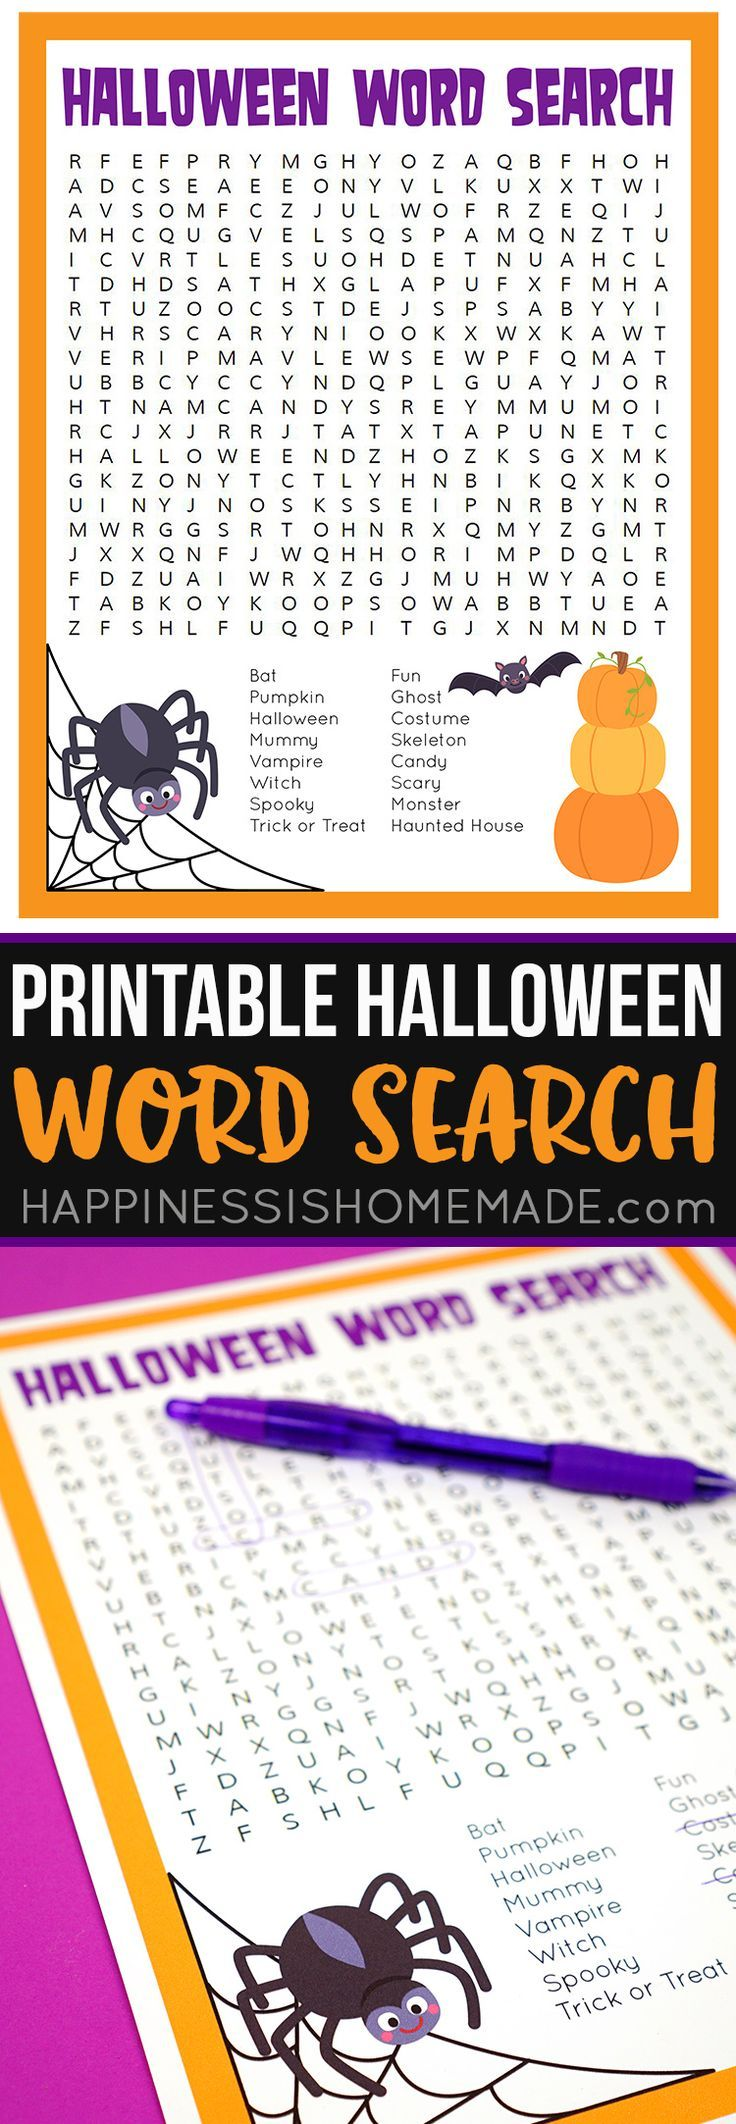 This spooky Halloween Word Search printable puzzle is a ton of fun for kids and families! Perfect for teachers and students in the school classroom! via @hiHomemadeBlog